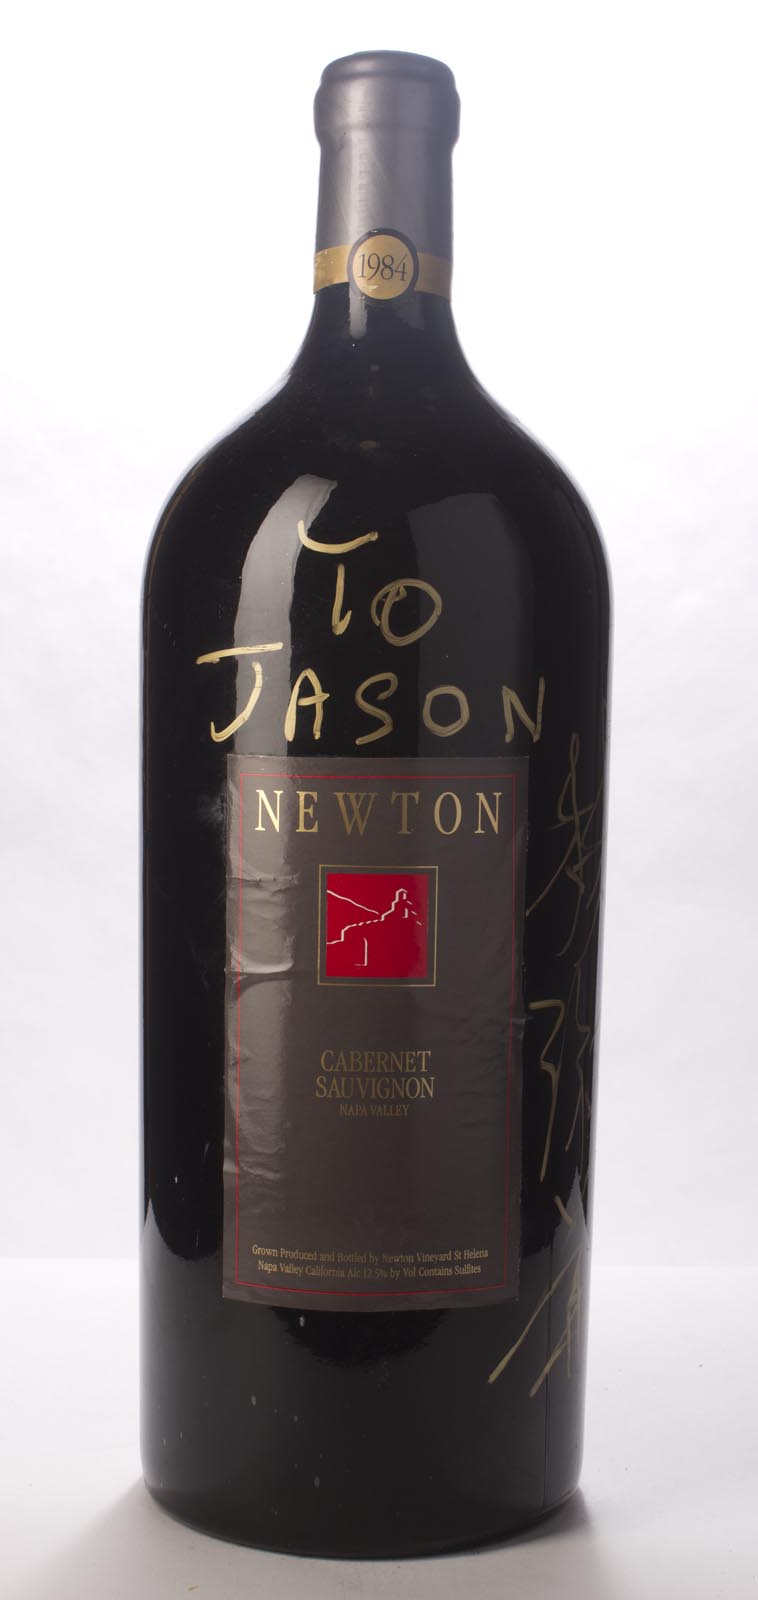 Newton Cabernet Sauvignon Napa Valley Unfiltered 1984, 6L (WS91) from The BPW - Merchants of rare and fine wines.